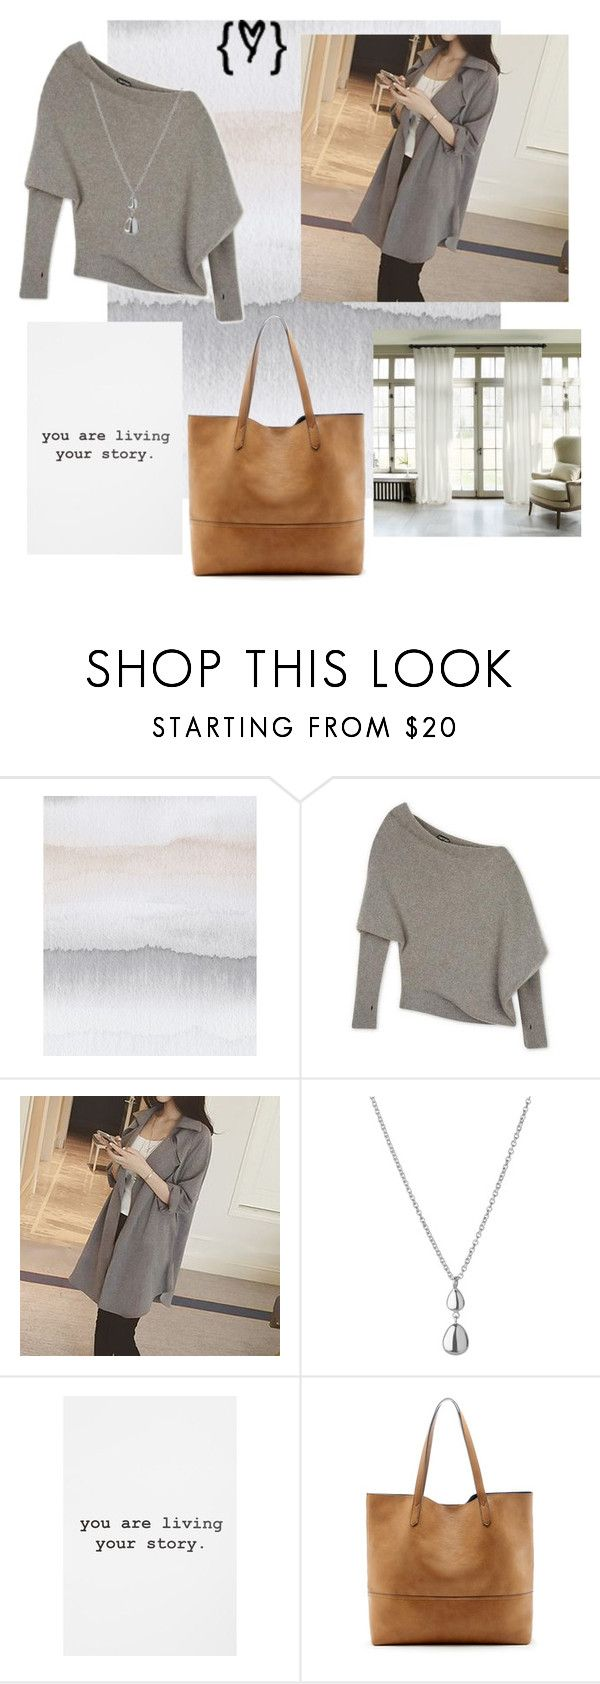 """Your story"" by anamil ❤ liked on Polyvore featuring WALL, Cloud Nine, Links of London, Urban Outfitters and Sole Society"